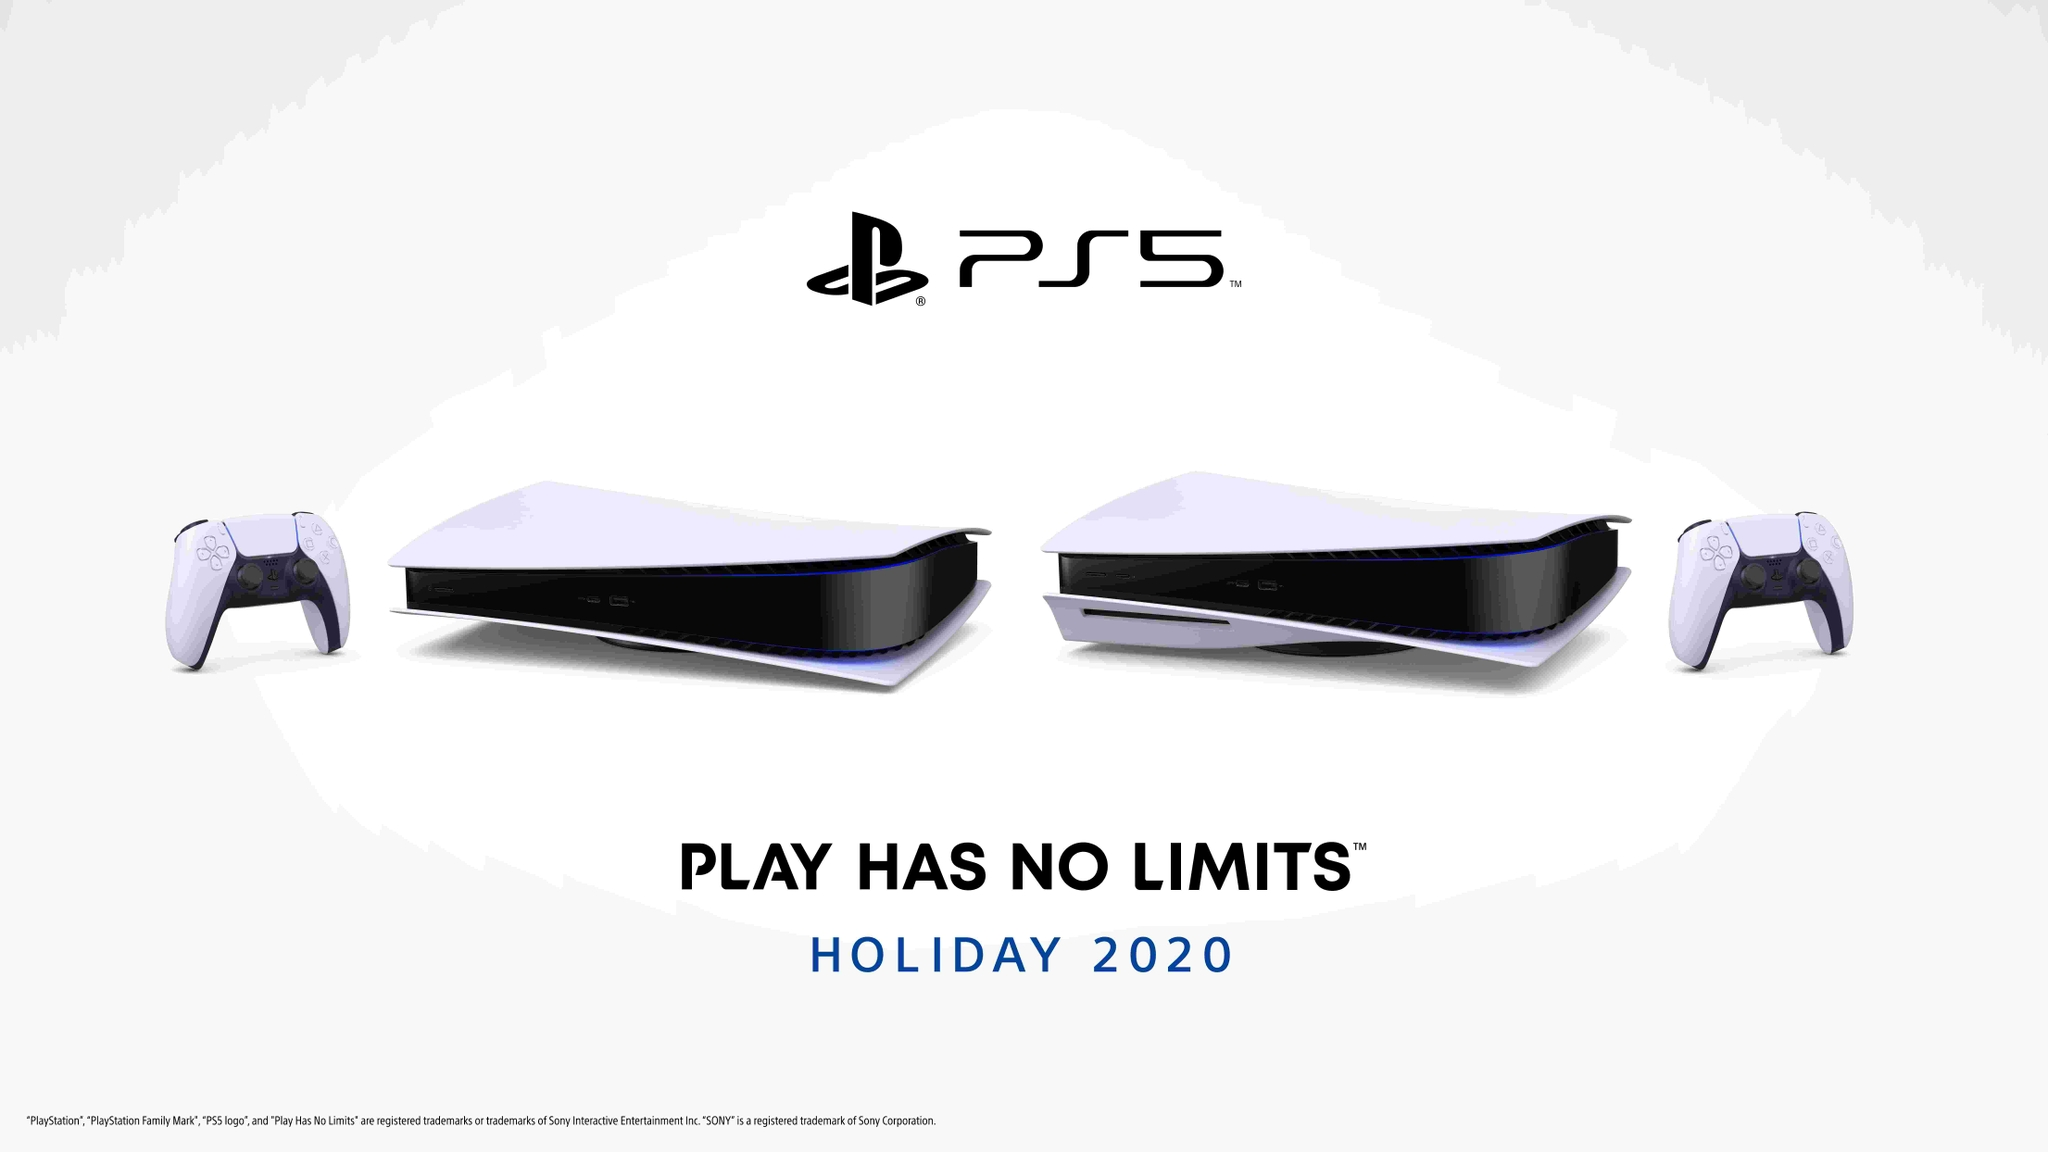 PlayStation 5 consoles flat